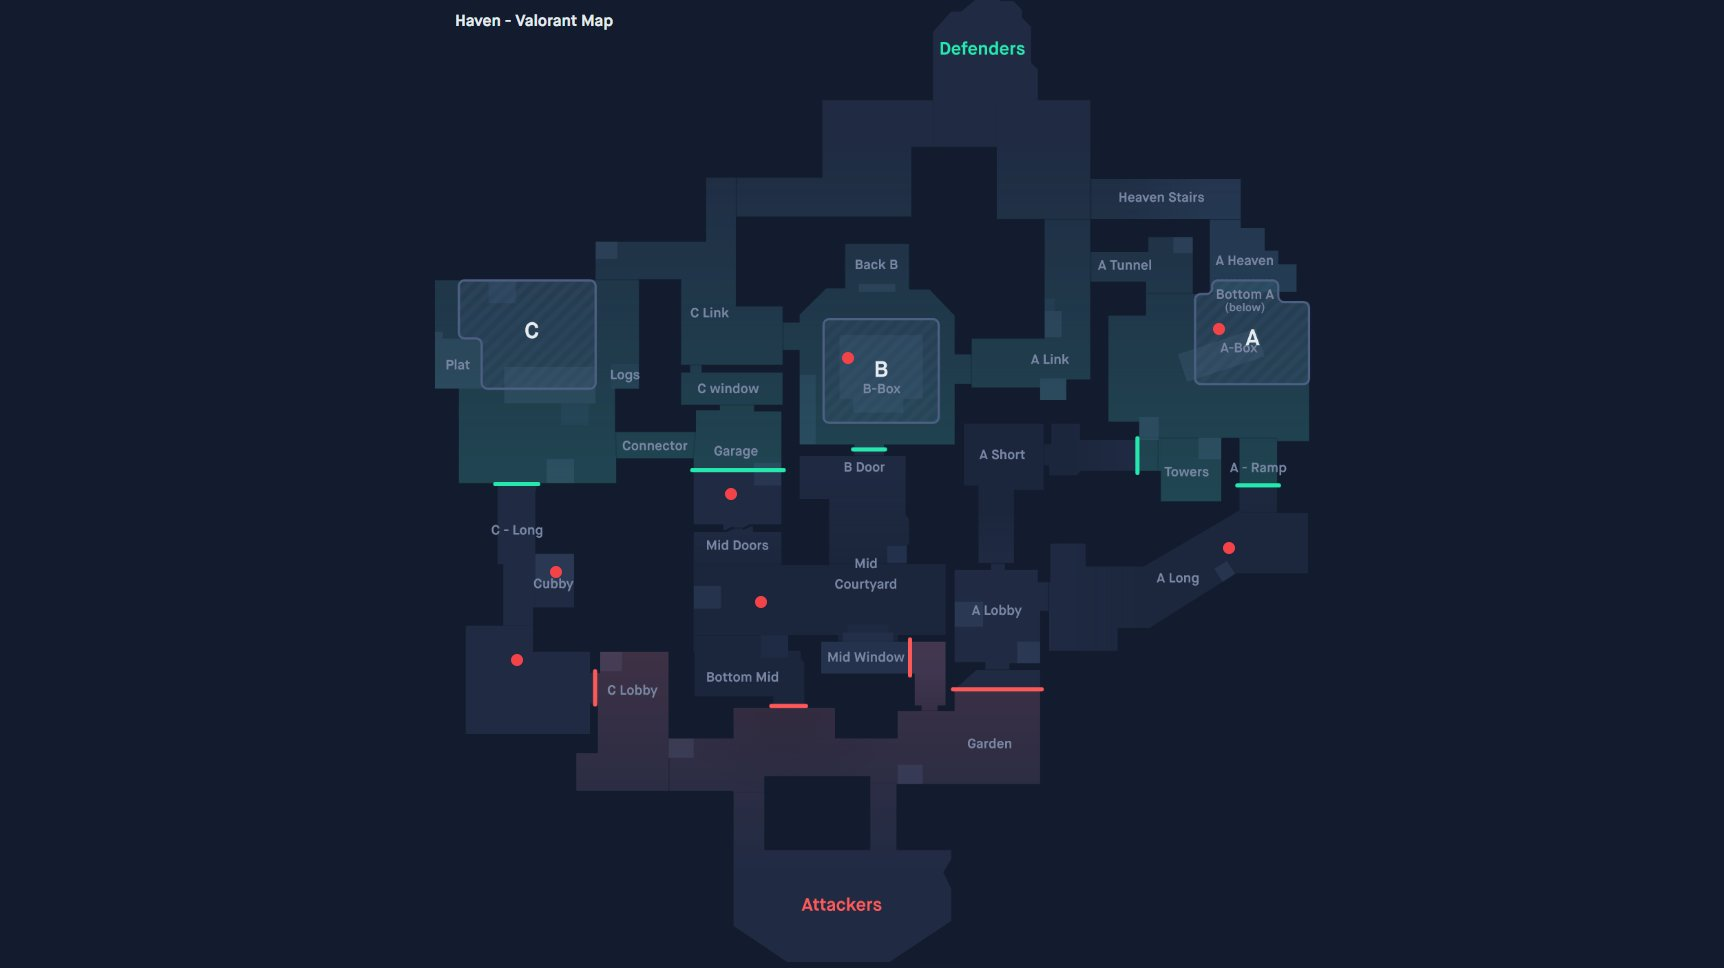 Valorant Haven Map Callouts